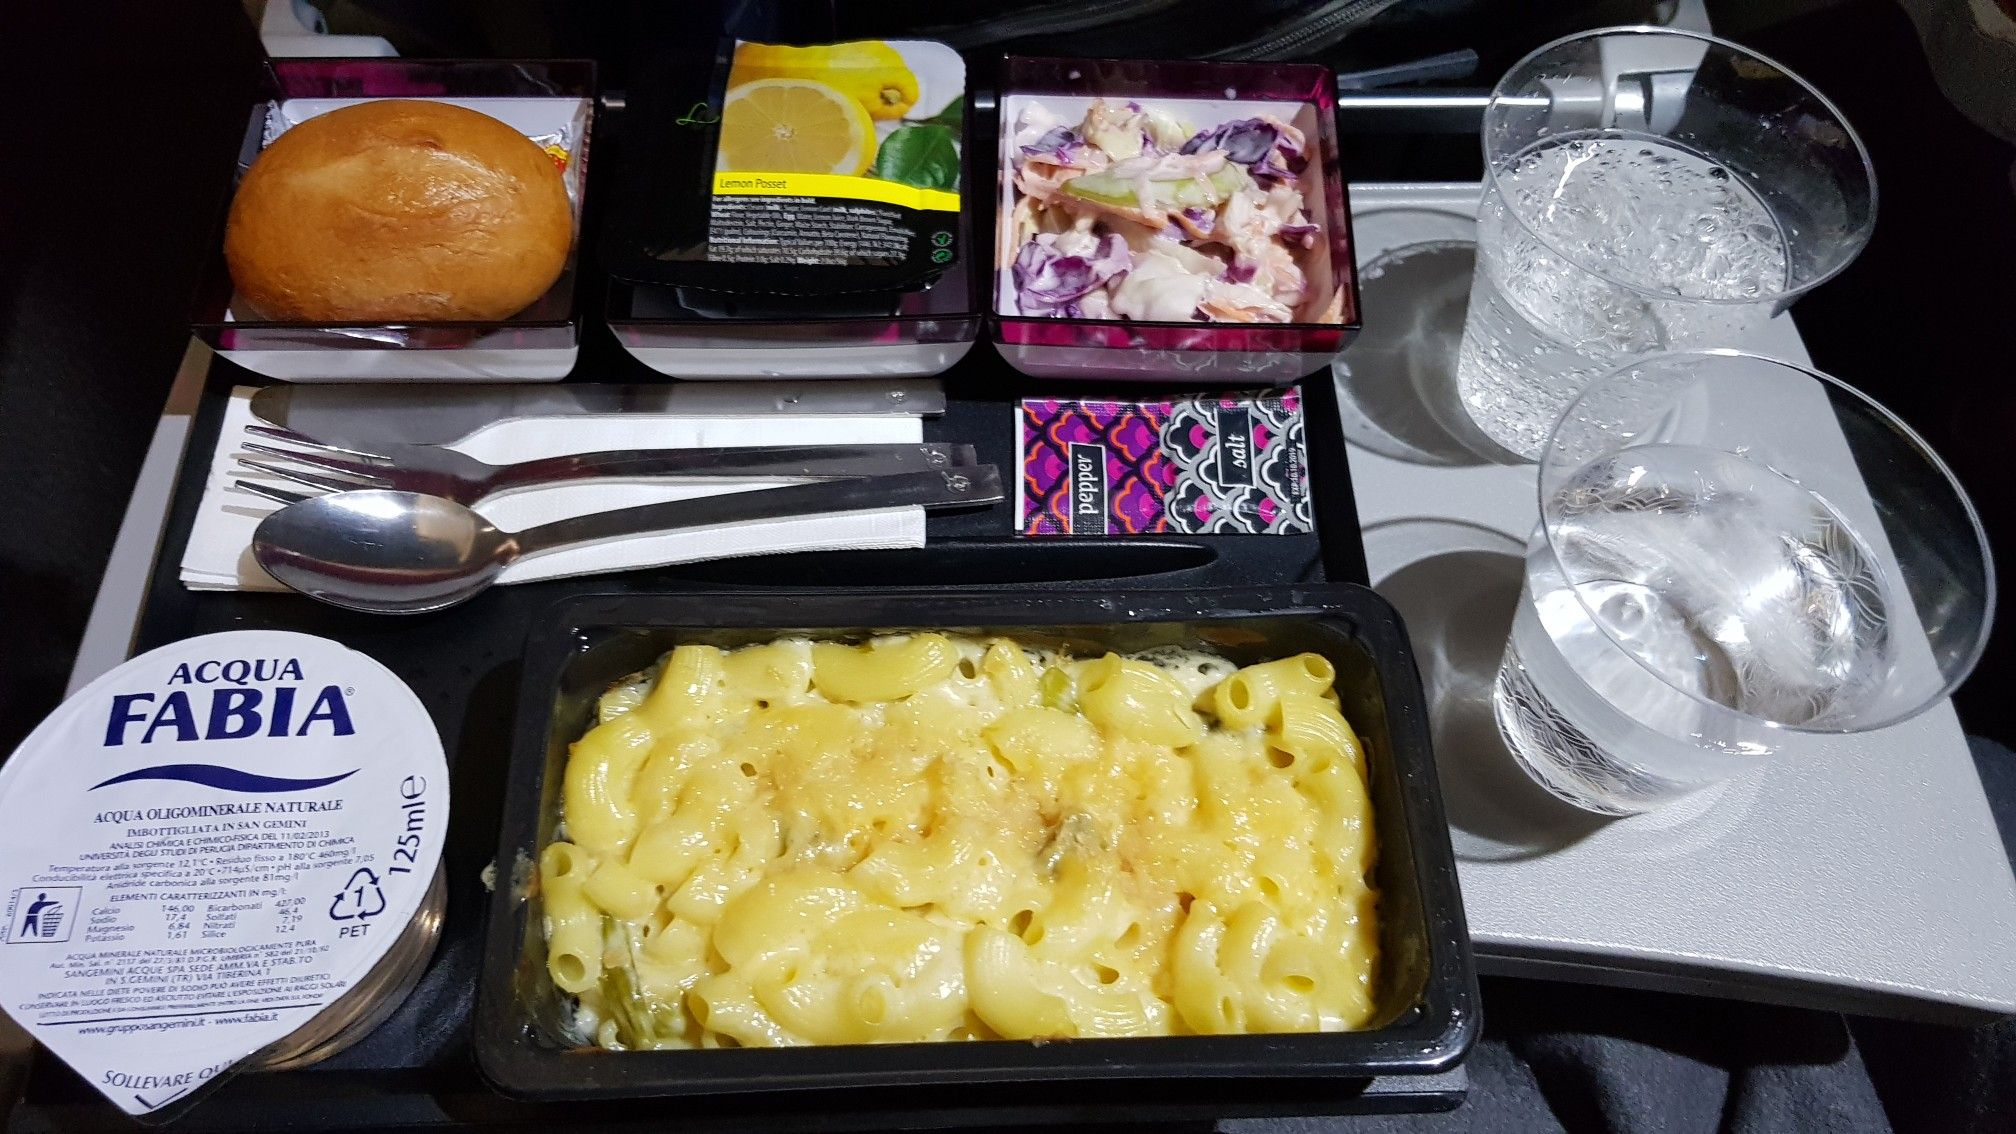 Qatar Airline Milan to Doha Airline food, Food